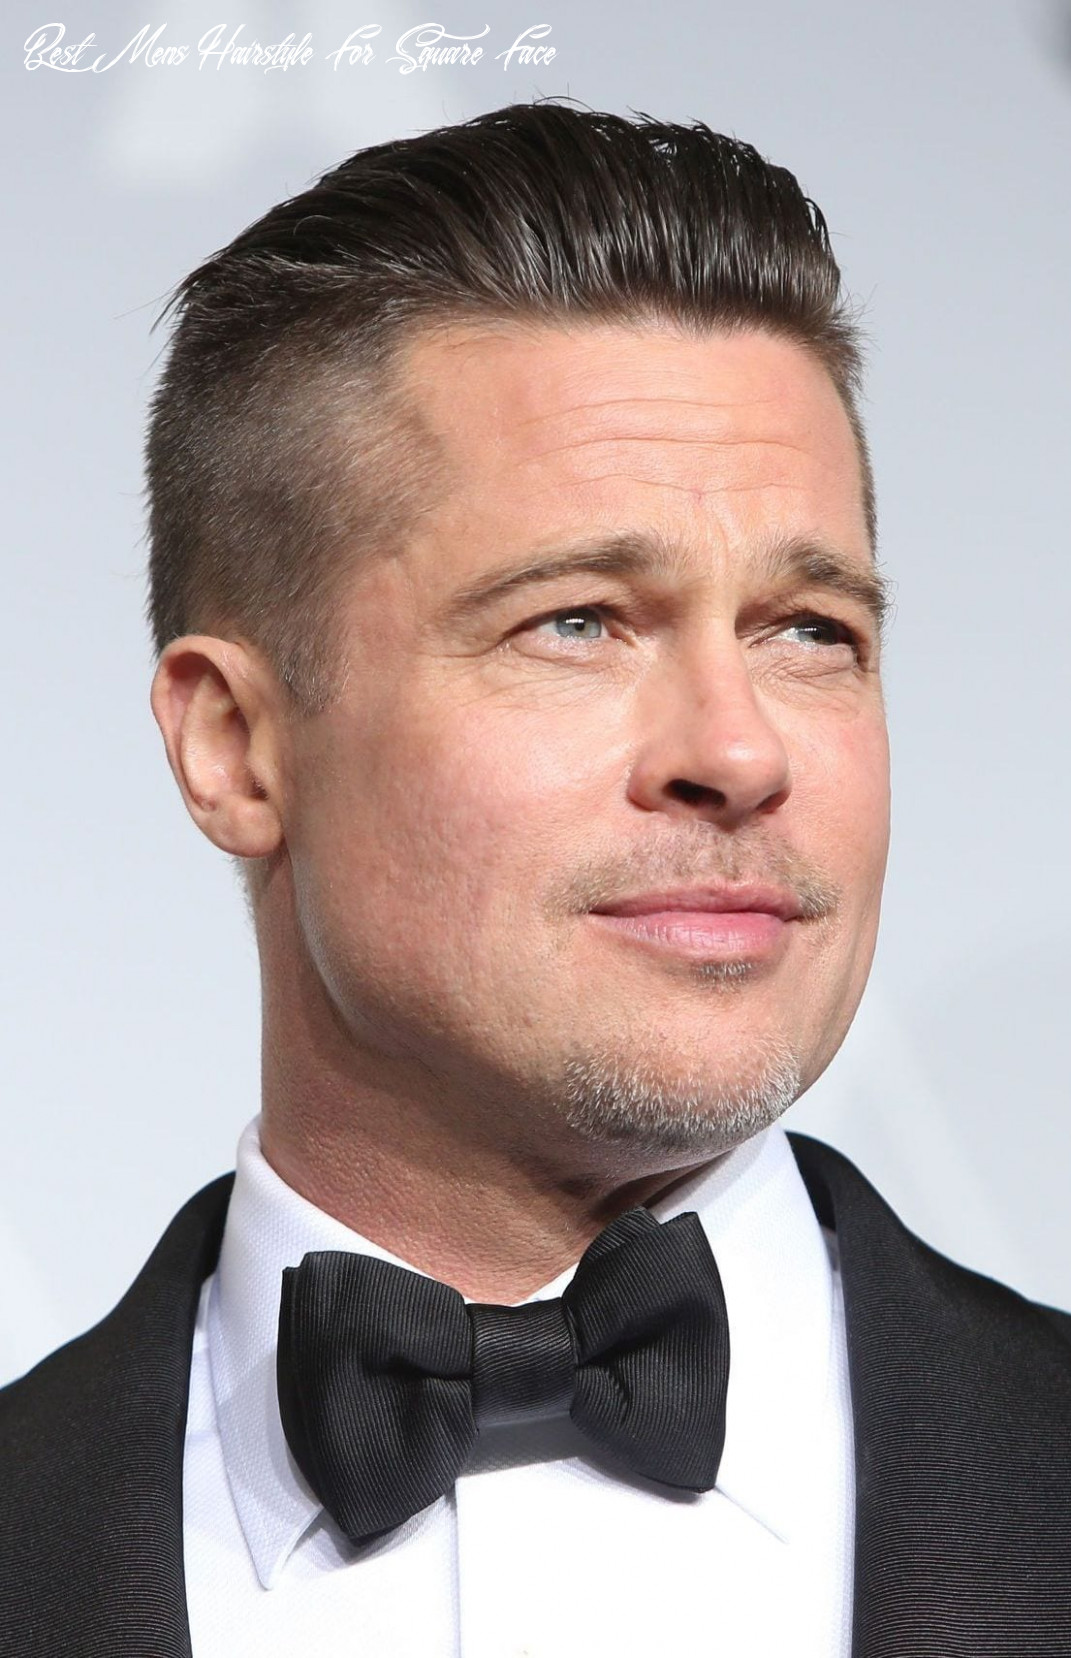 Top 9 elegant haircuts for guys with square faces best mens hairstyle for square face